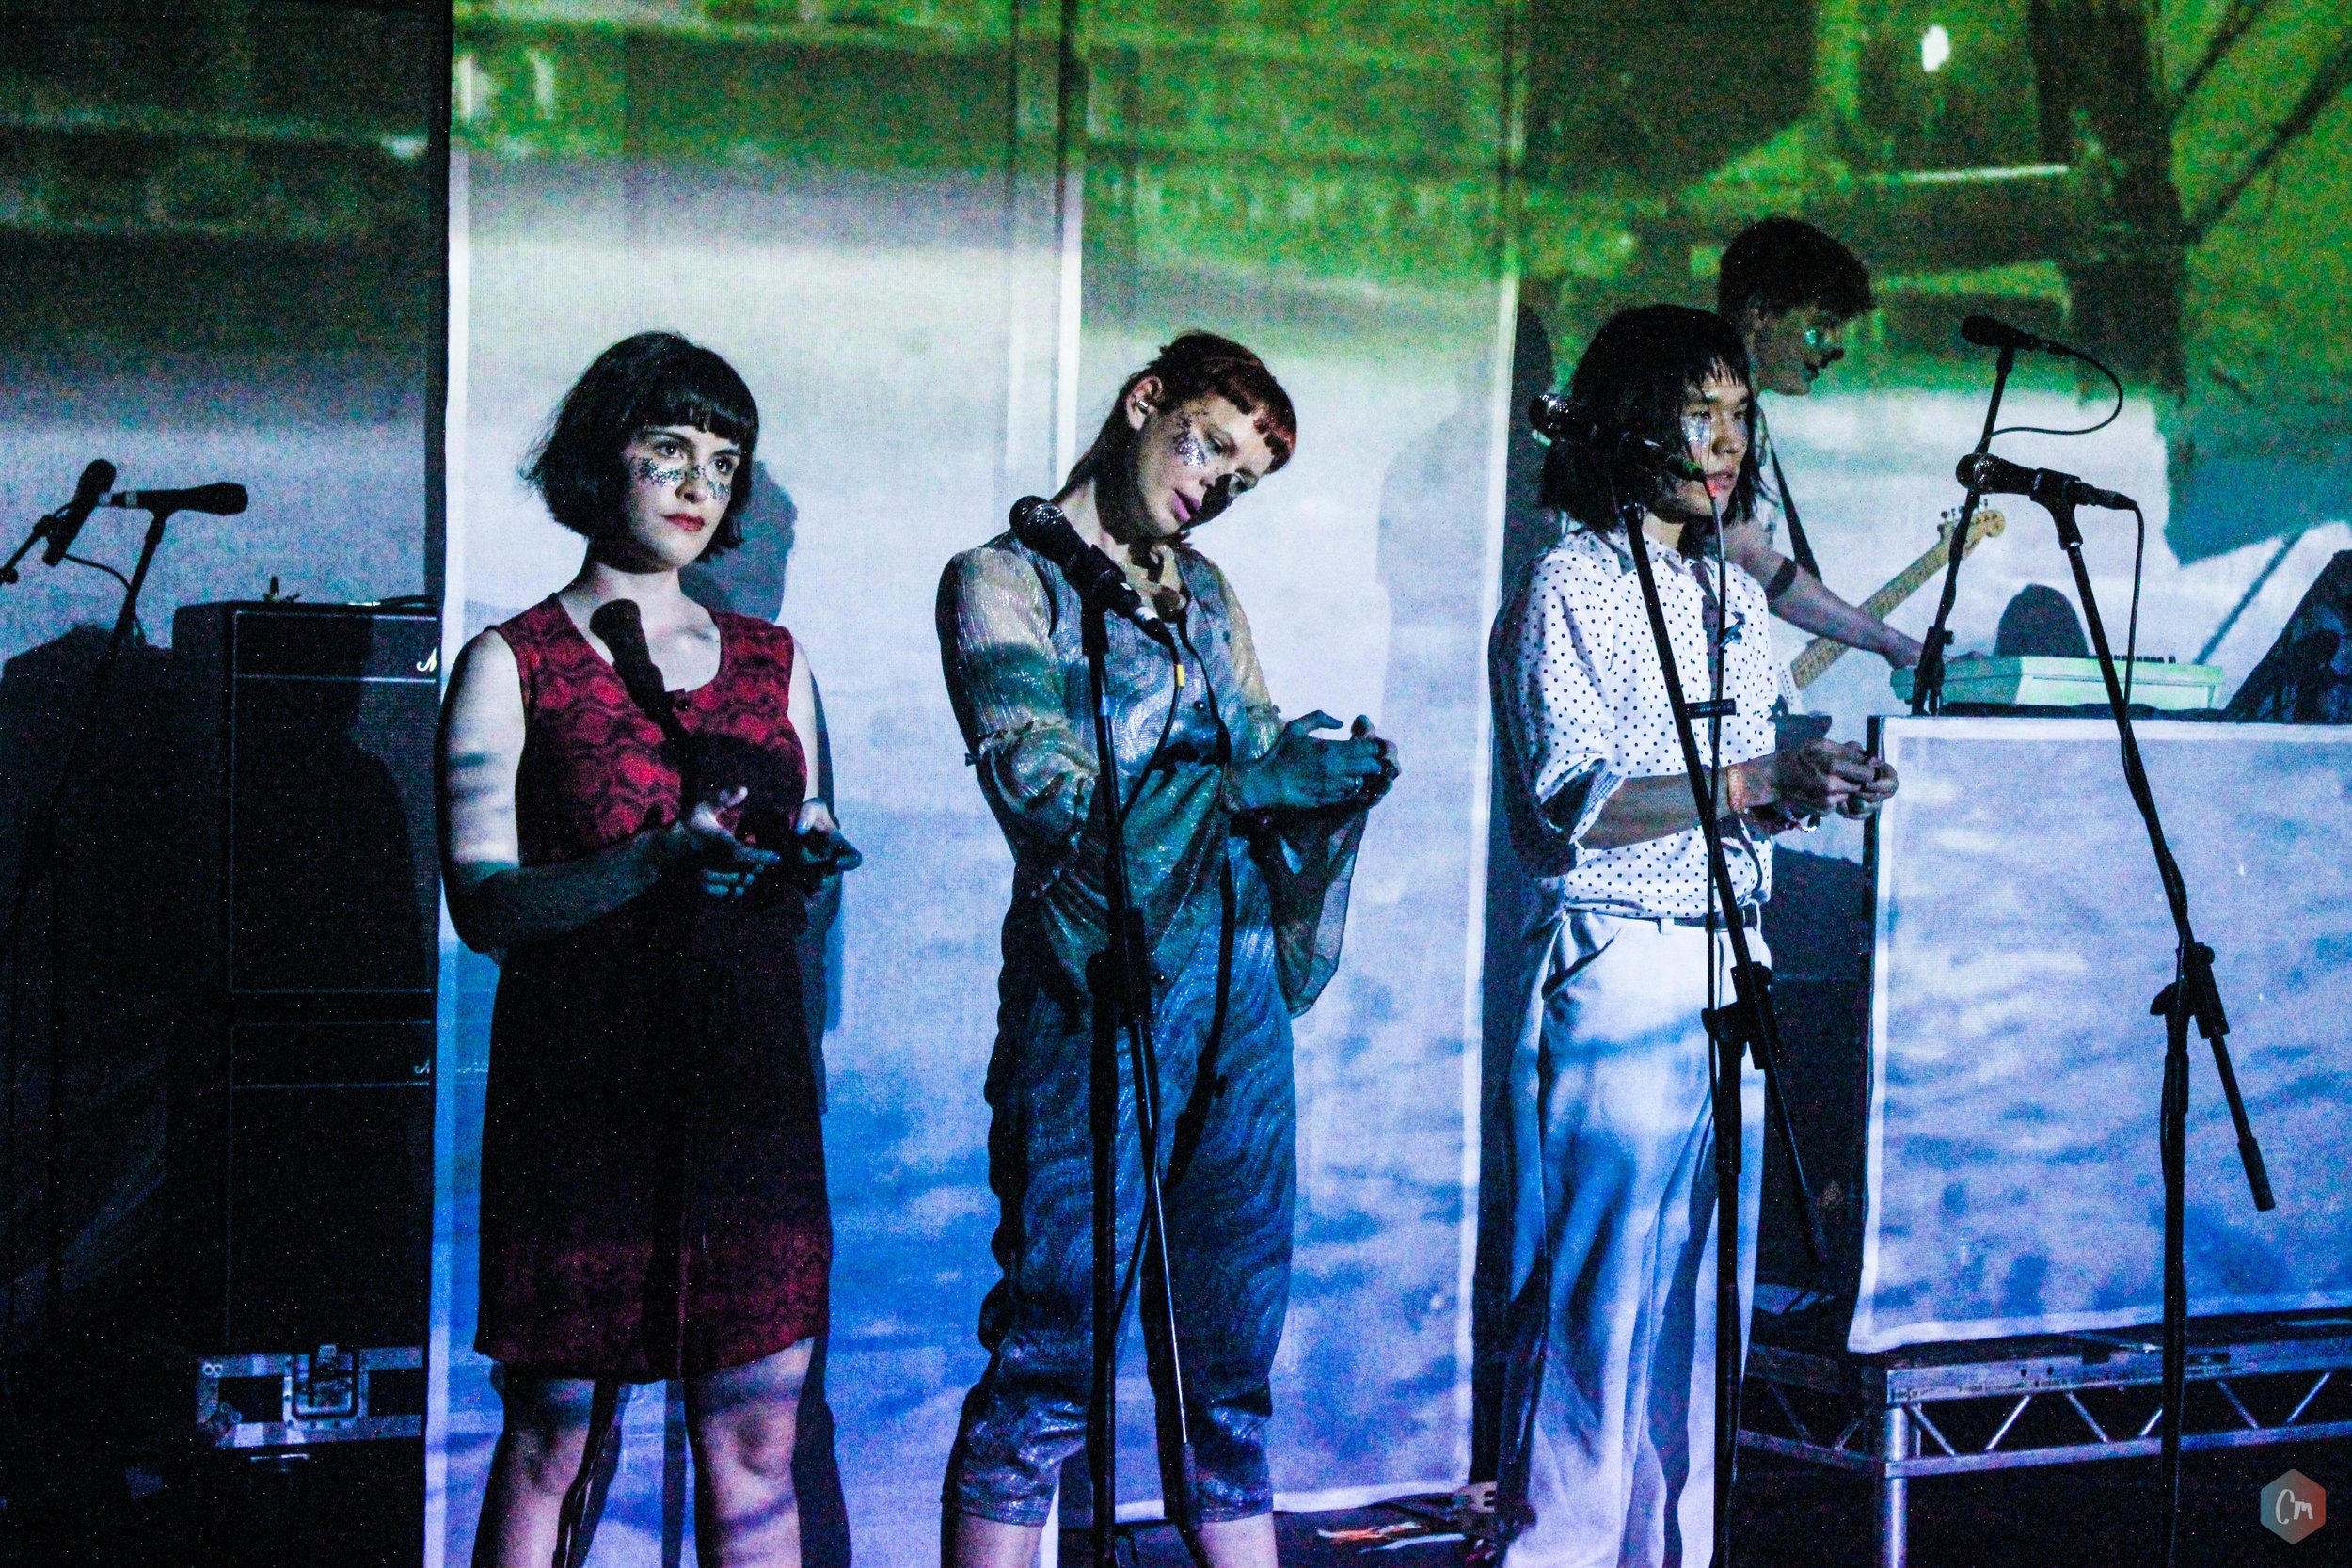 Superorganism at Live at Leeds - Photo © Concentus Music - Reproduction without permission not permitted